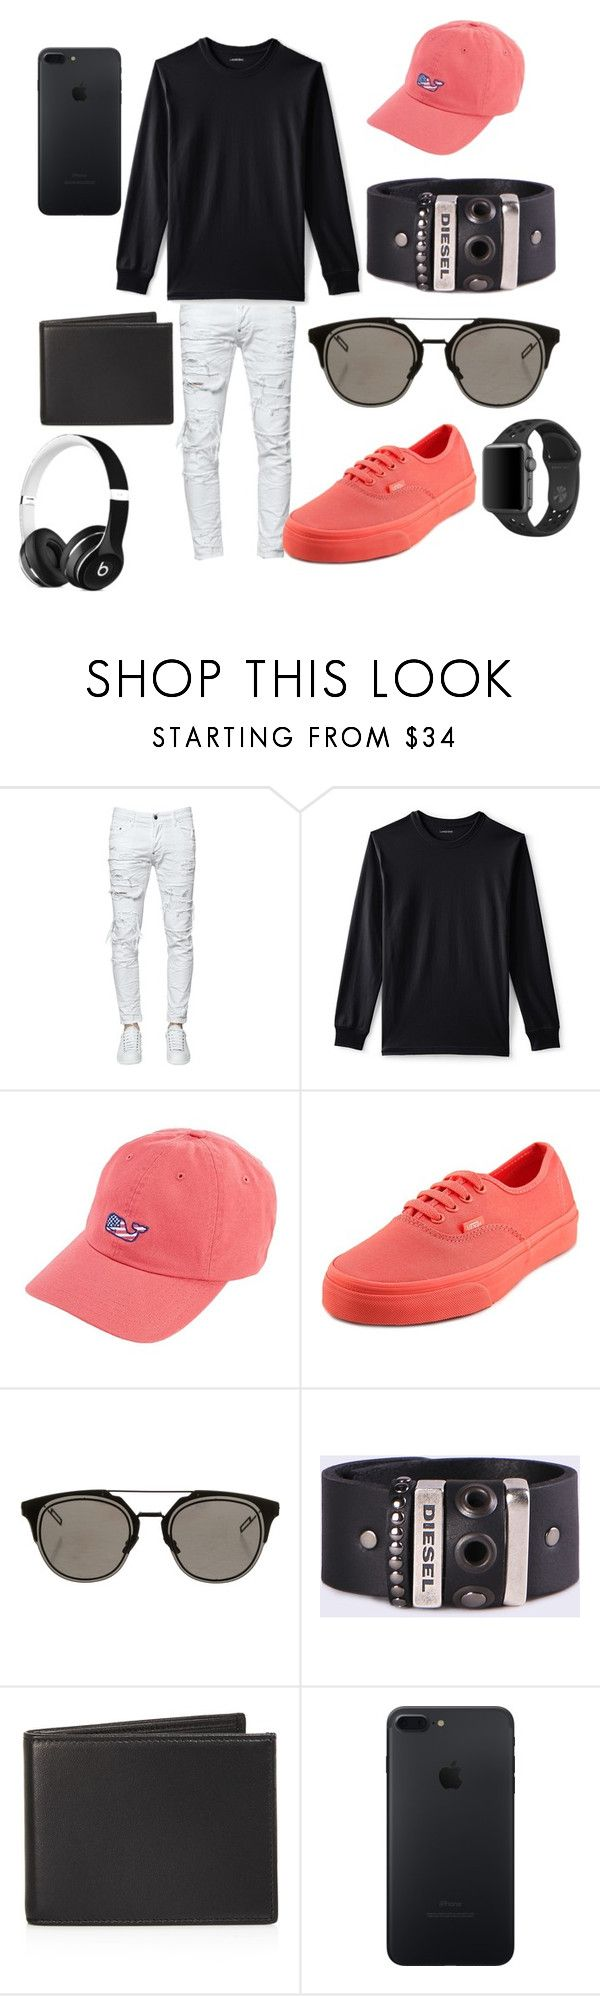 """""""Tris"""" by vejacomotenpovoa ❤ liked on Polyvore featuring Dsquared2, Lands' End, Vineyard Vines, Vans, Christian Dior, Diesel, The Men's Store, NIKE, men's fashion and menswear"""